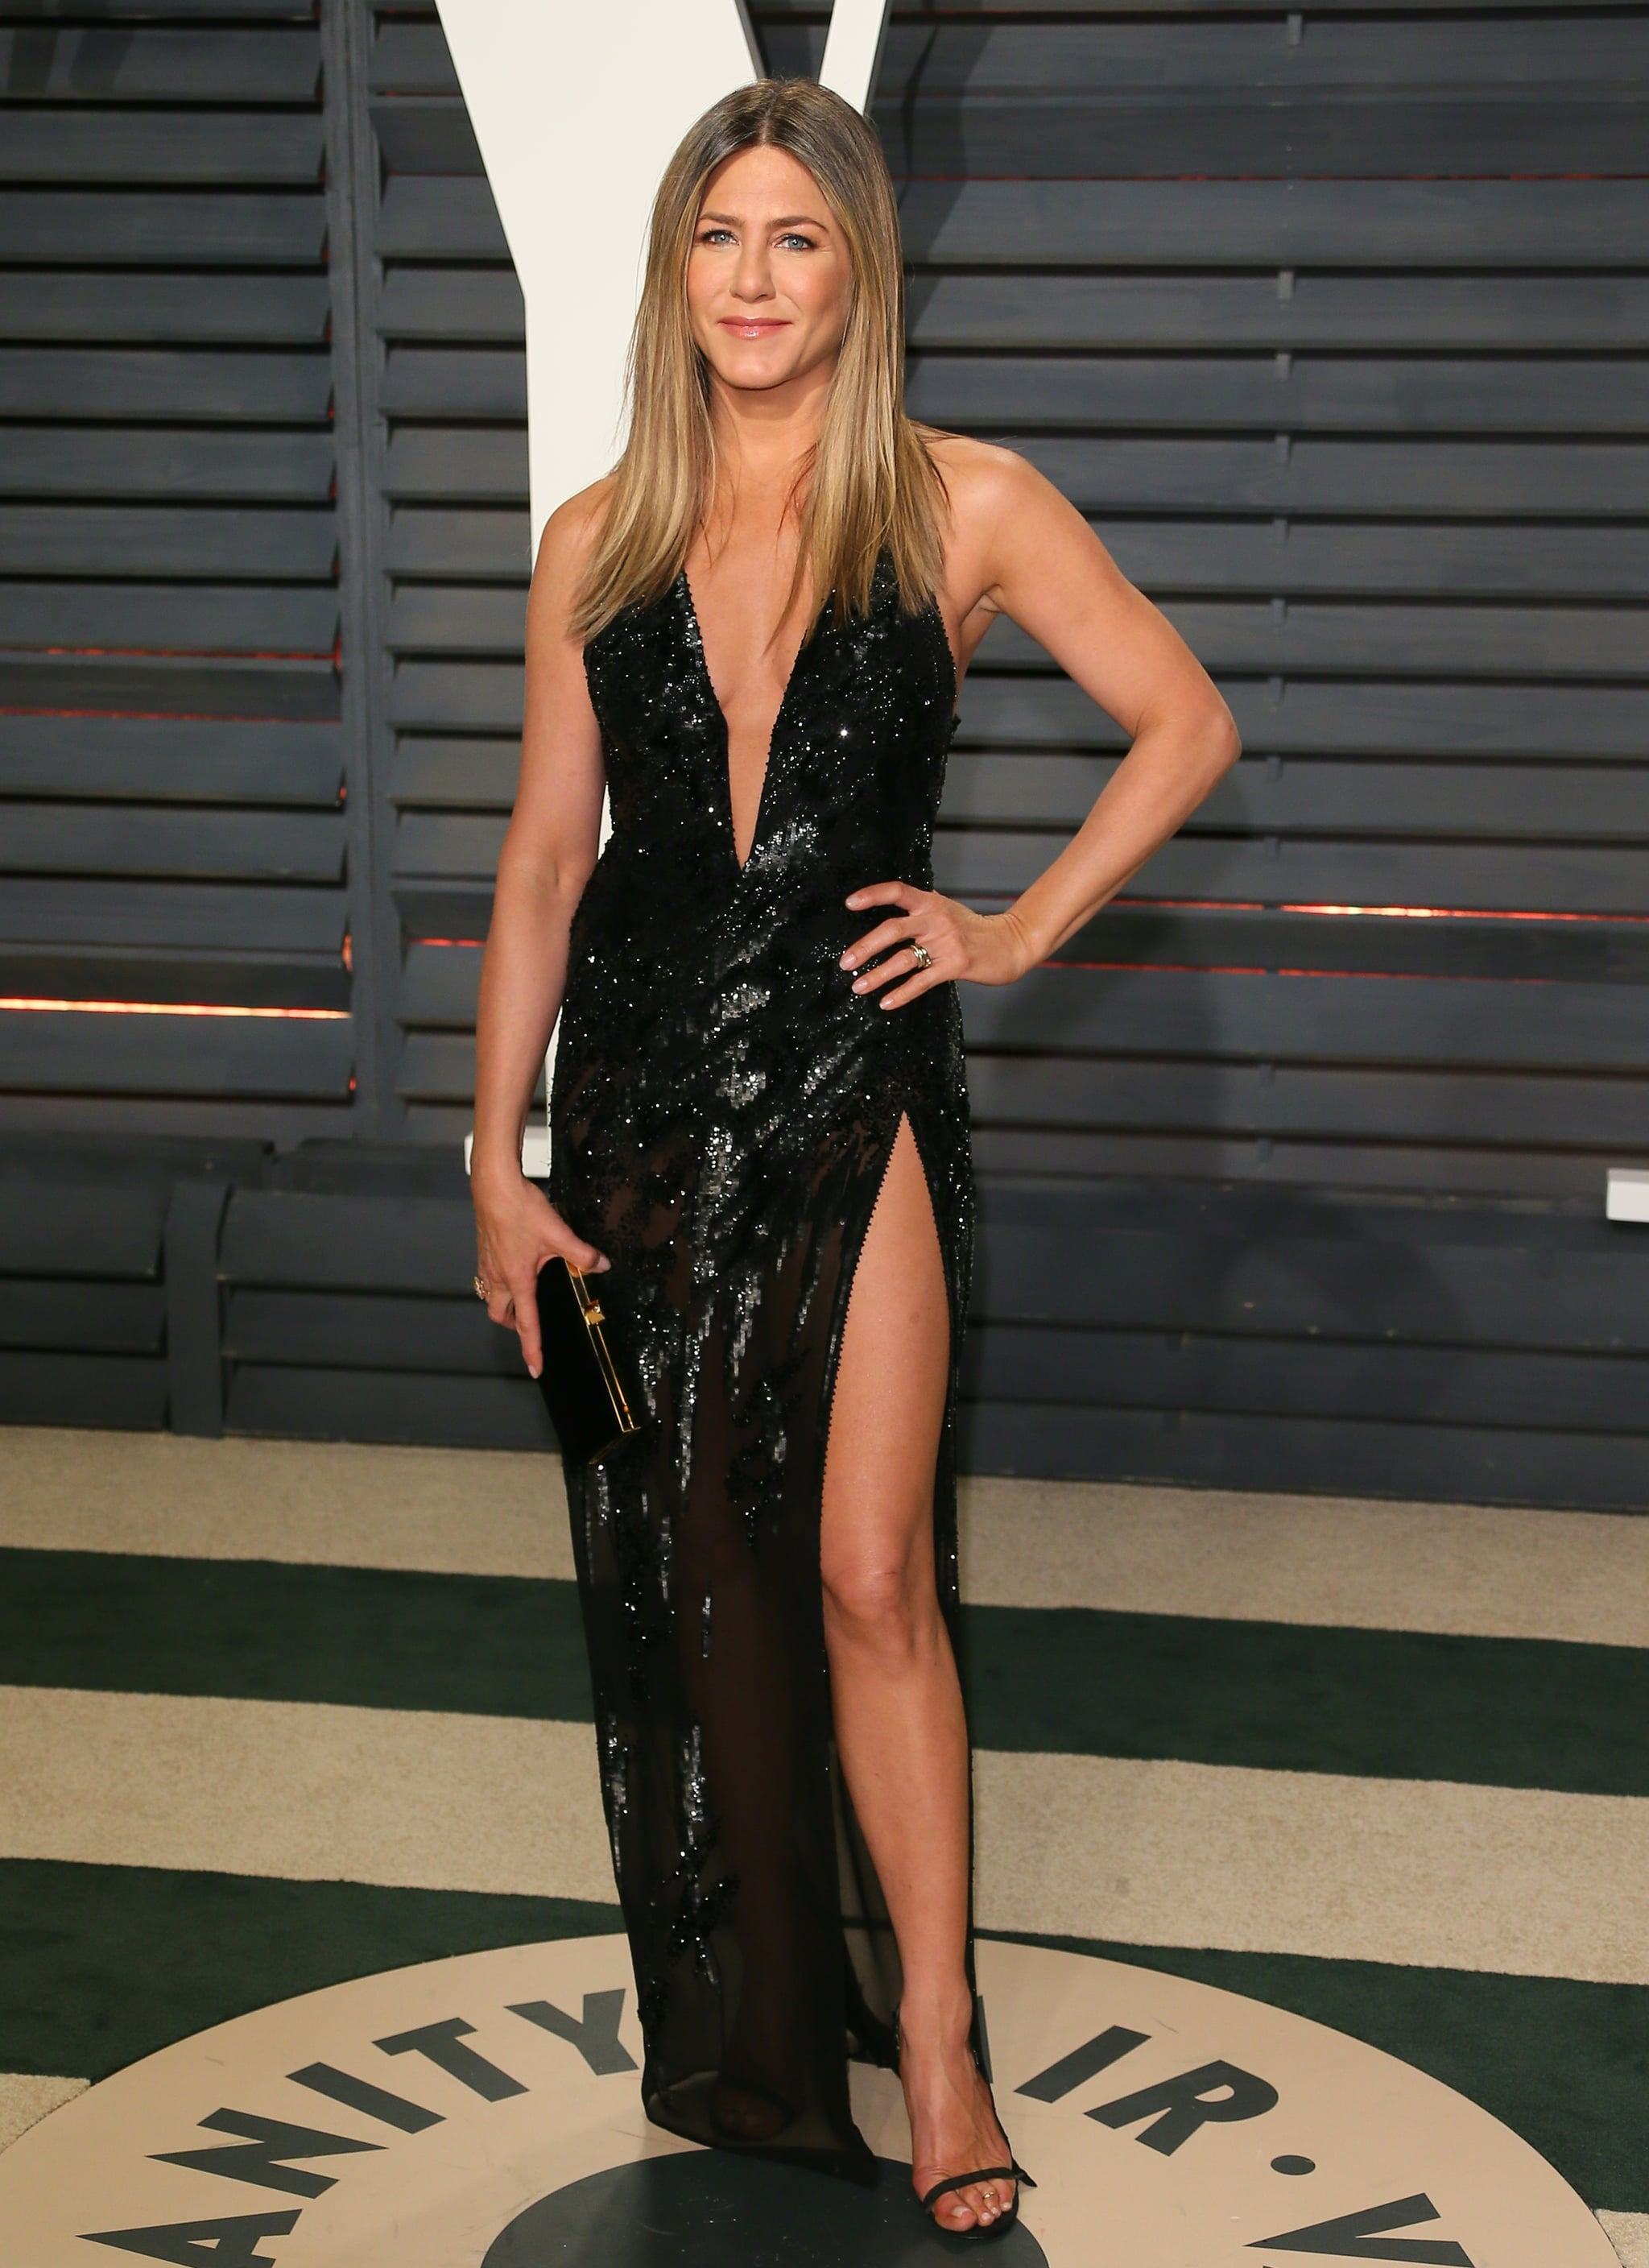 BEVERLY HILLS, CA - FEBRUARY 26: Jennifer Aniston attends the 2017 Vanity Fair Oscar Party hosted by Graydon Carter at Wallis Annenberg centre for the Performing Arts on February 26, 2017 in Beverly Hills, California. (Photo by JB Lacroix/WireImage)